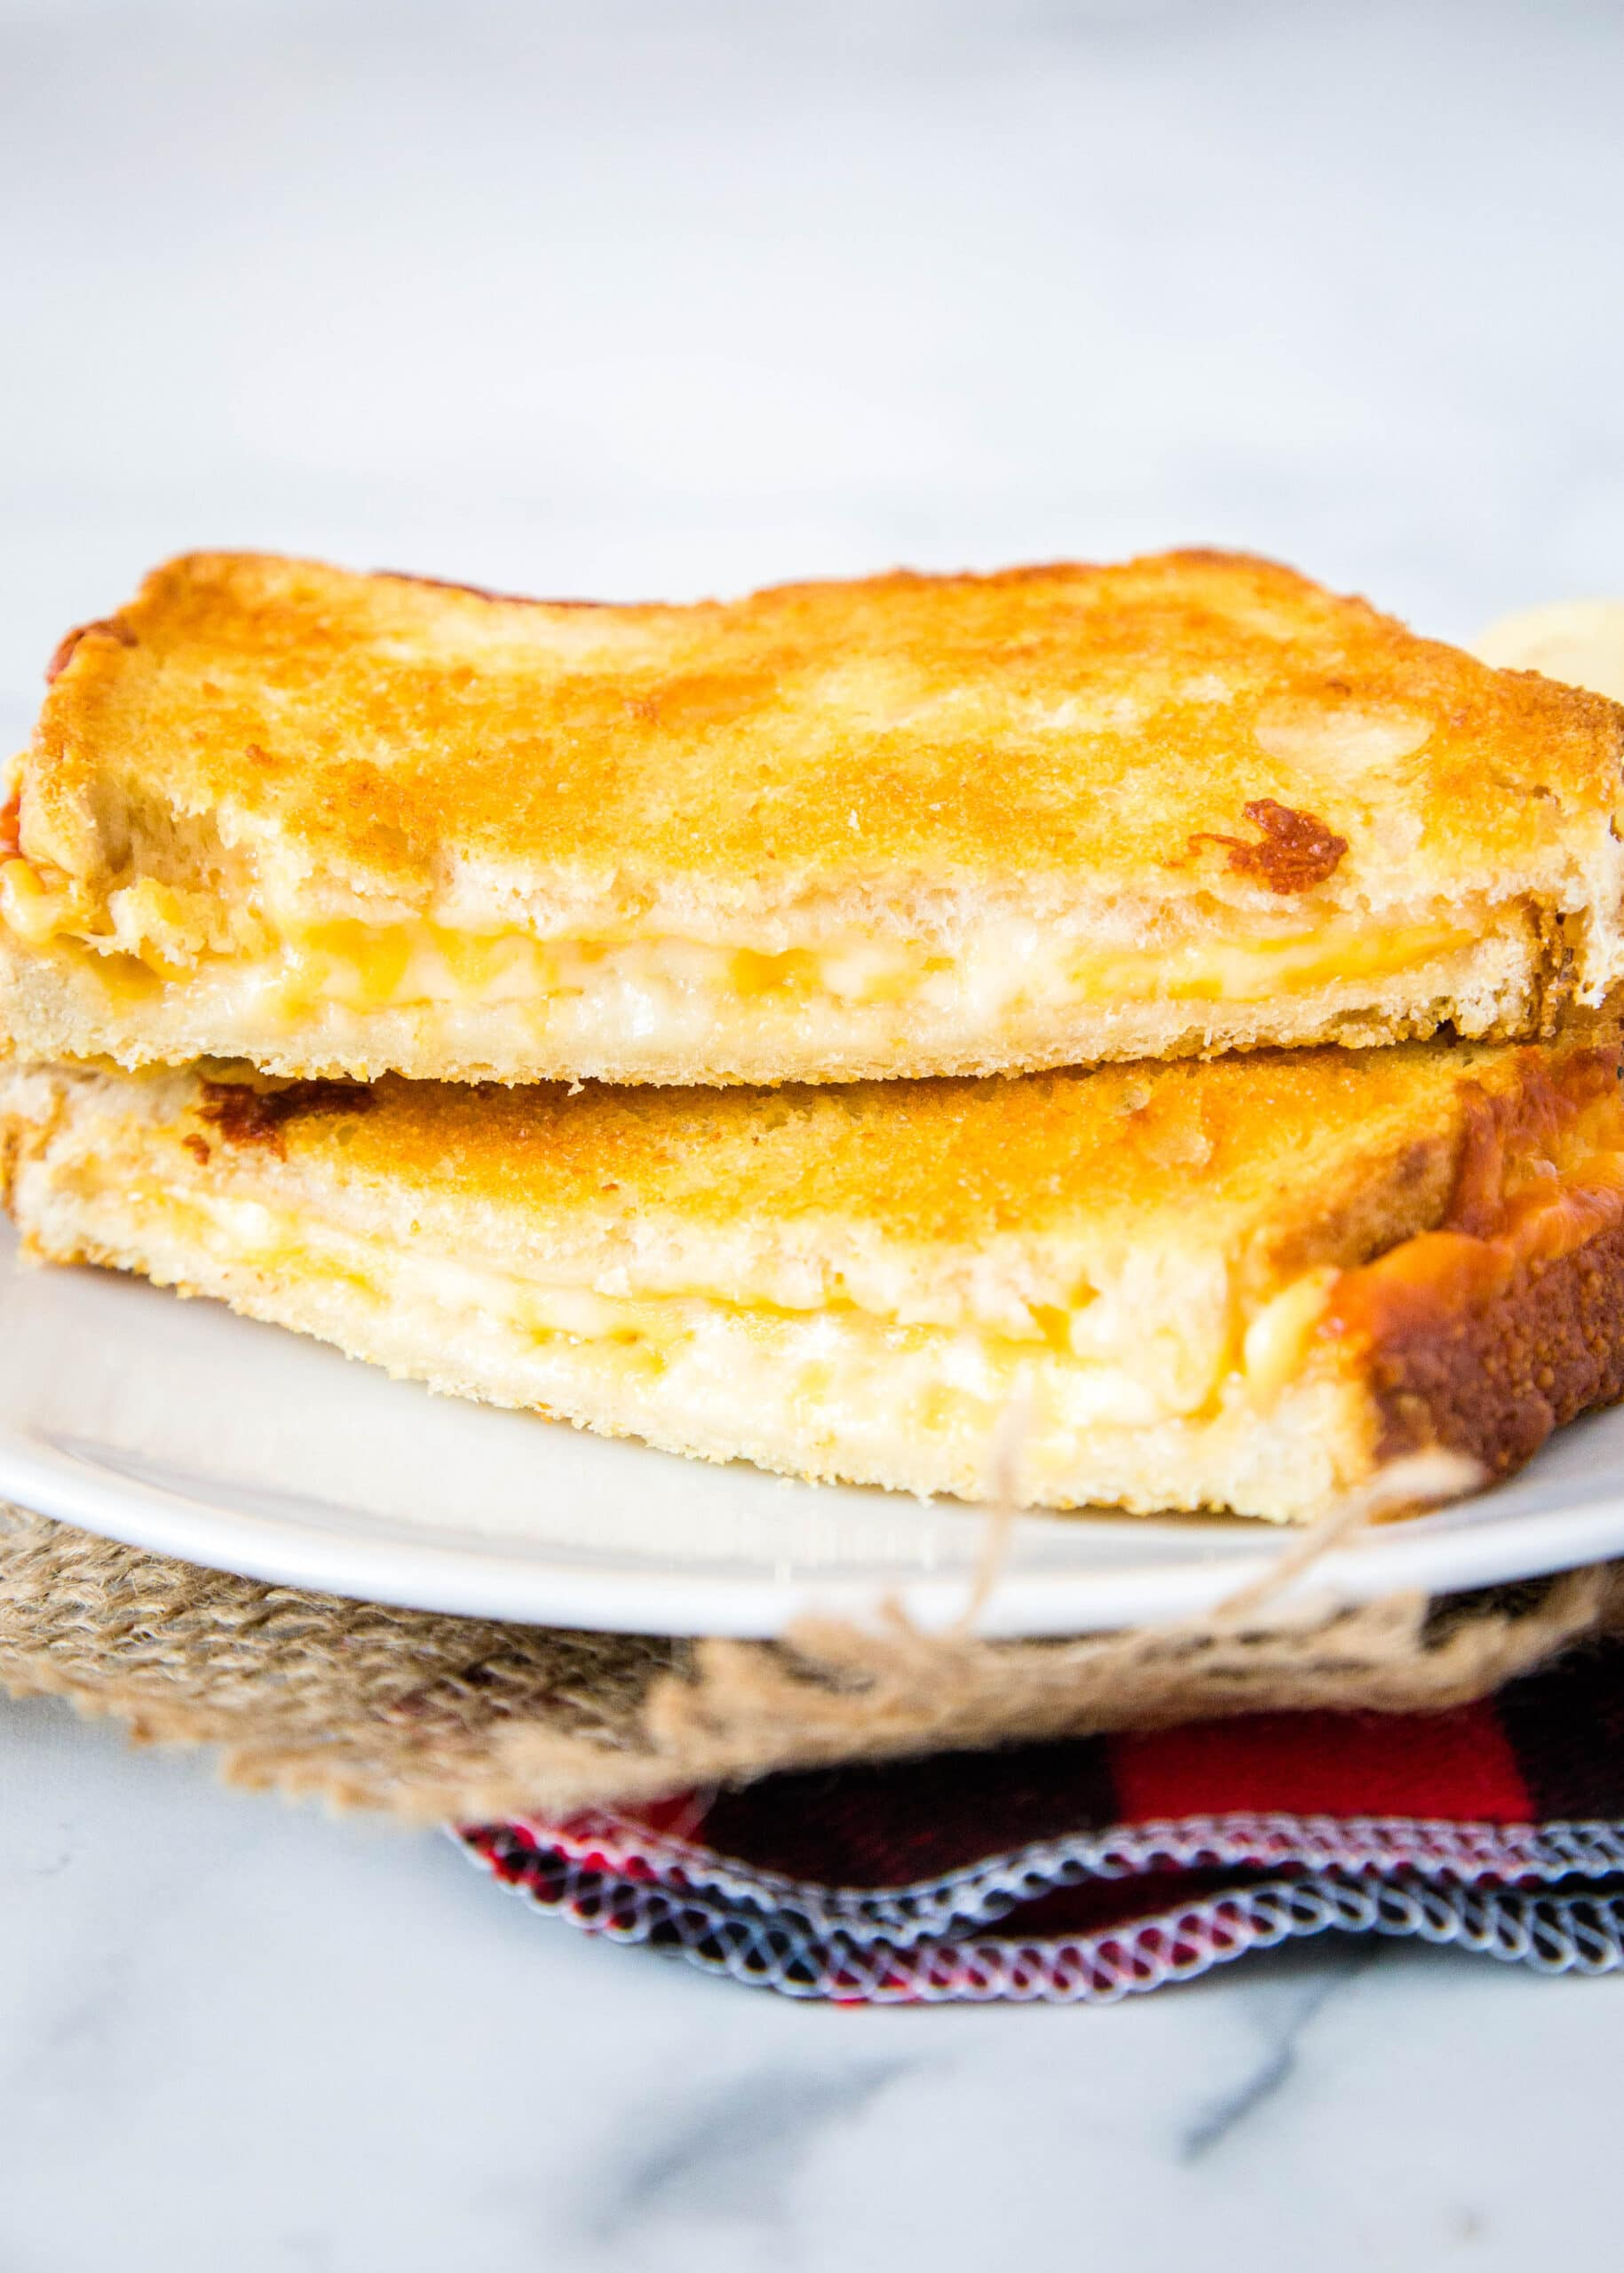 grilled cheese sandwich on a white plate